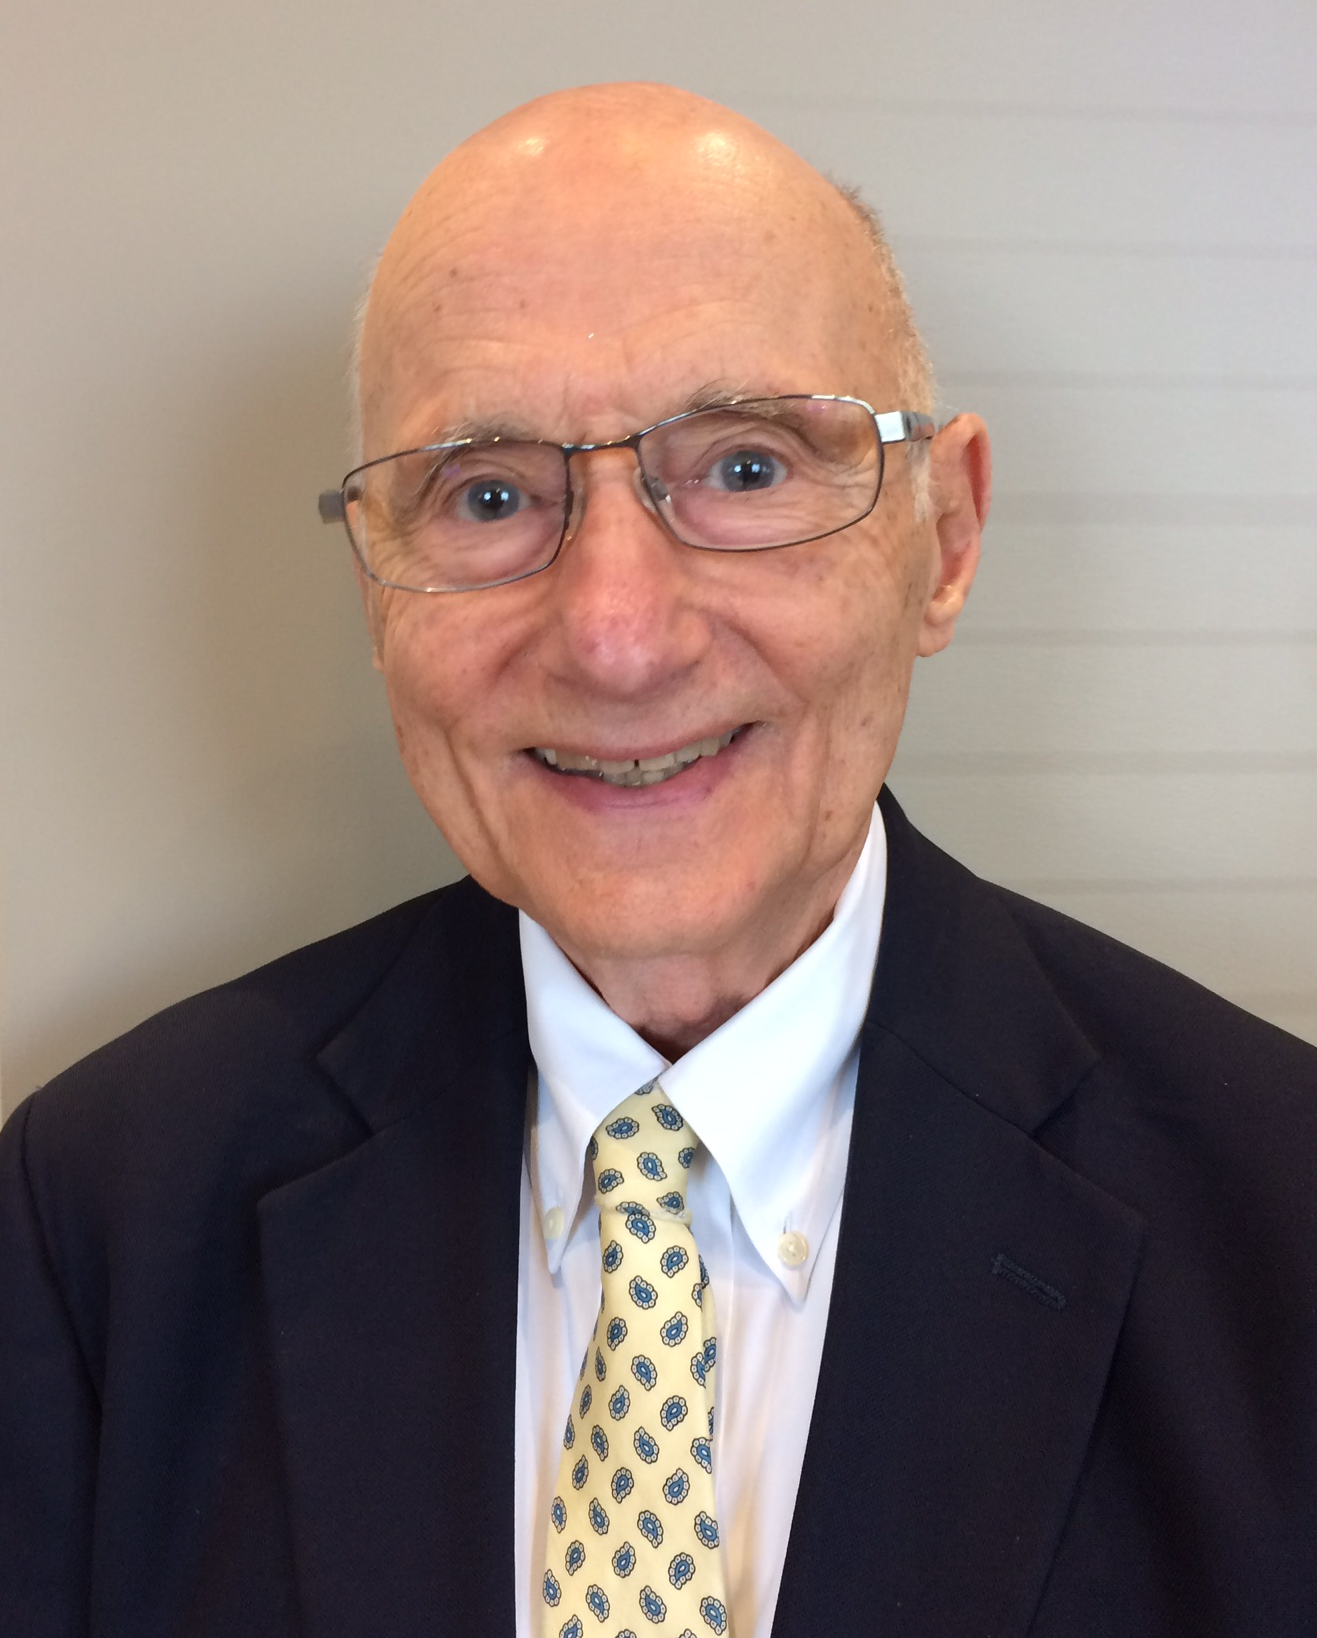 Holocaust Survivor, Lawyer To Give Lecture In Owensboro Tonight